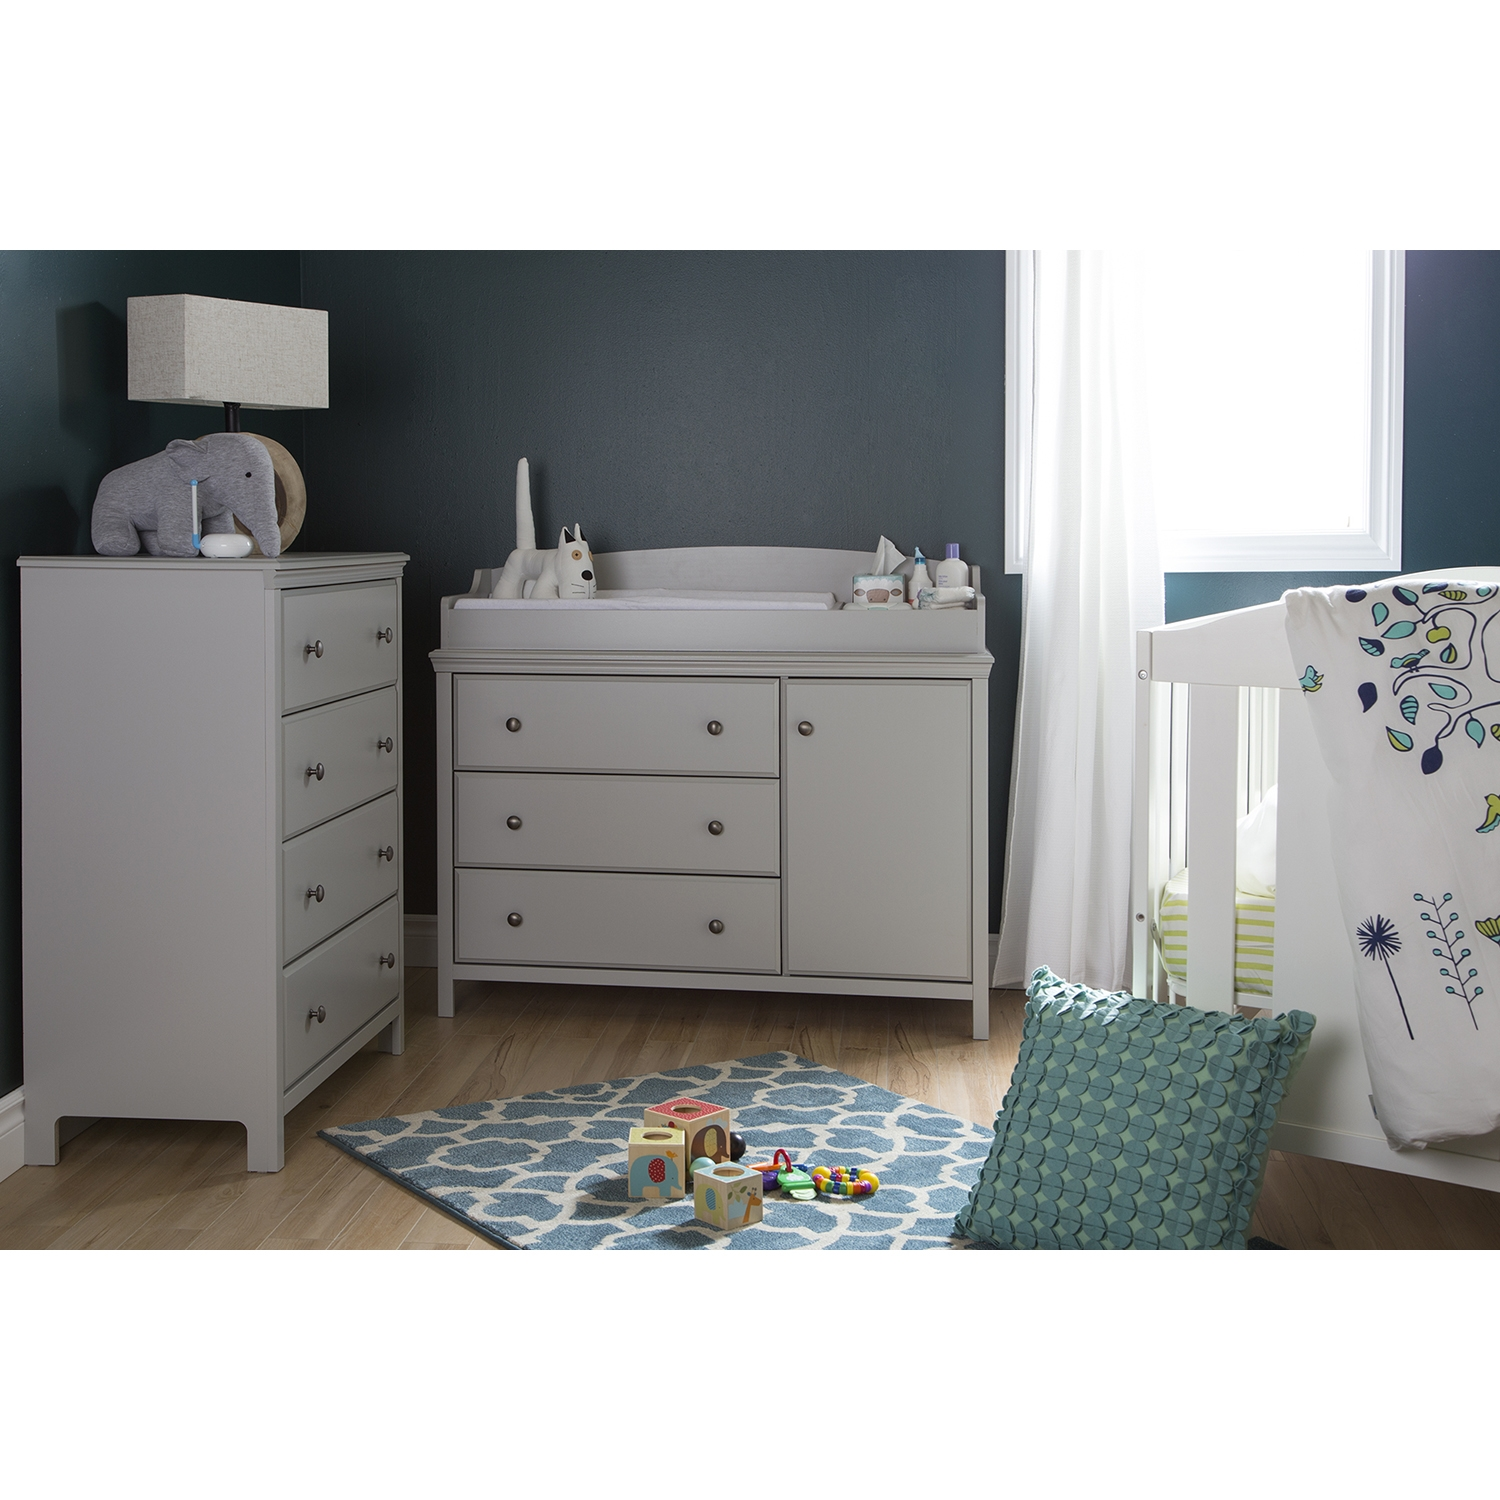 Cotton Candy Changing Table and 4 Drawers Chest - Soft Gray - SS-9020A2